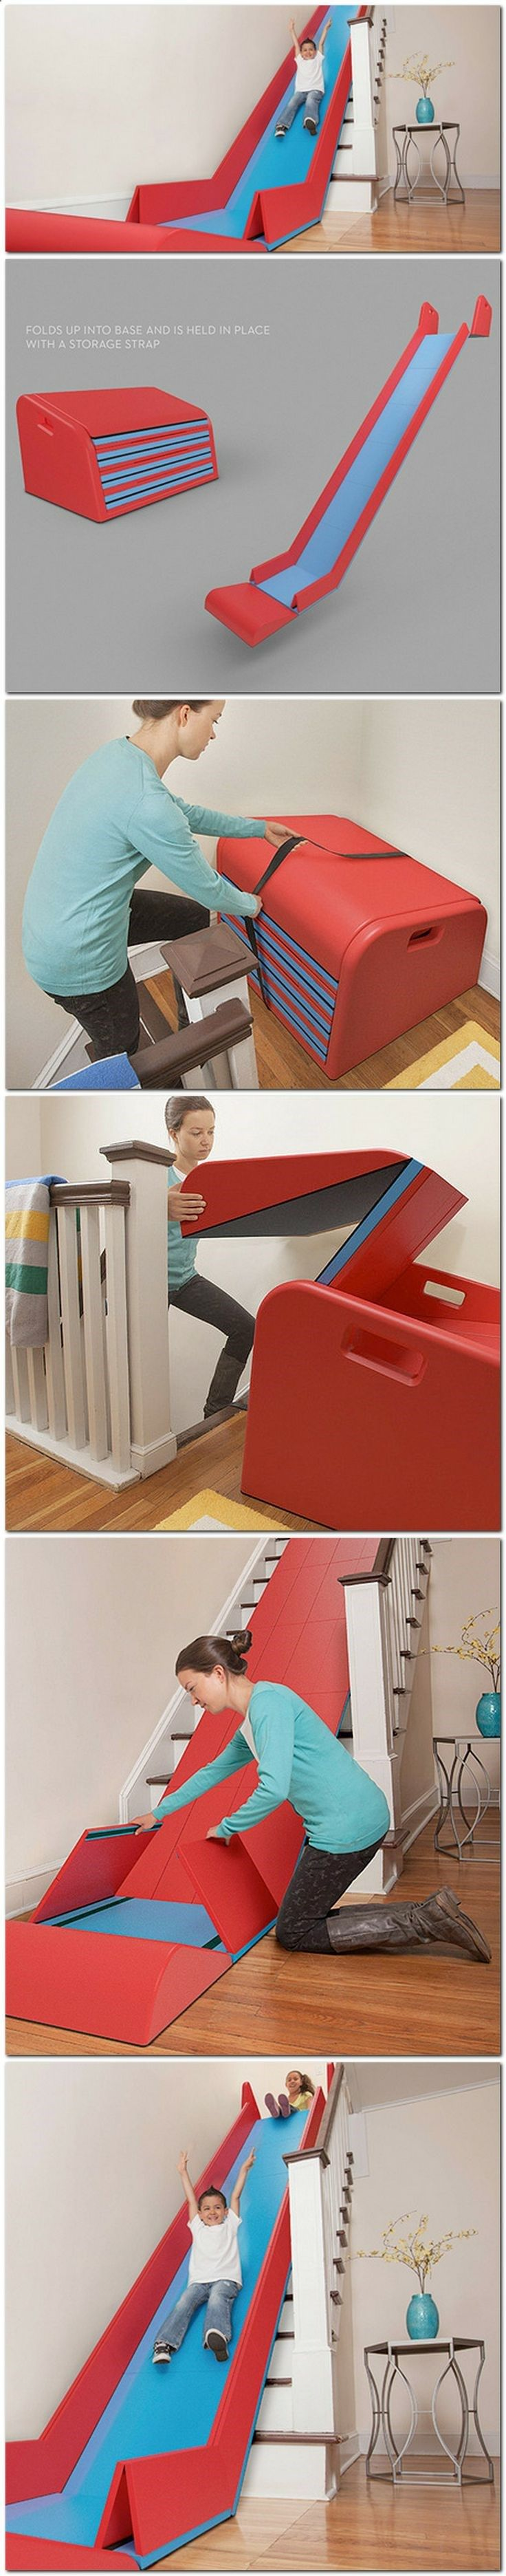 THIS IS AMAZING!!! Staircase slide? Need!